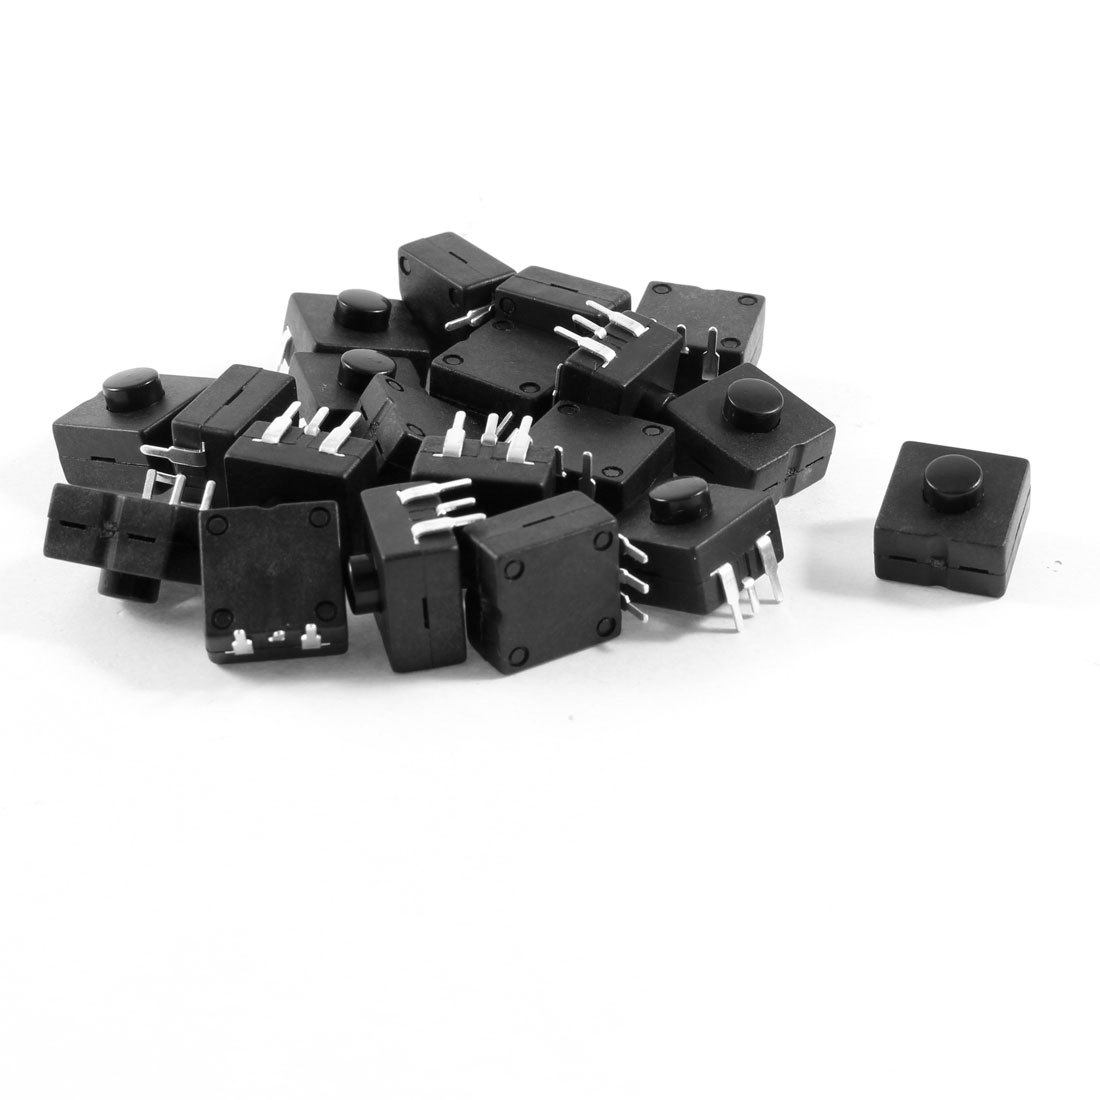 20 Pcs Vertical Latching Square Torch Push Button Switch Black